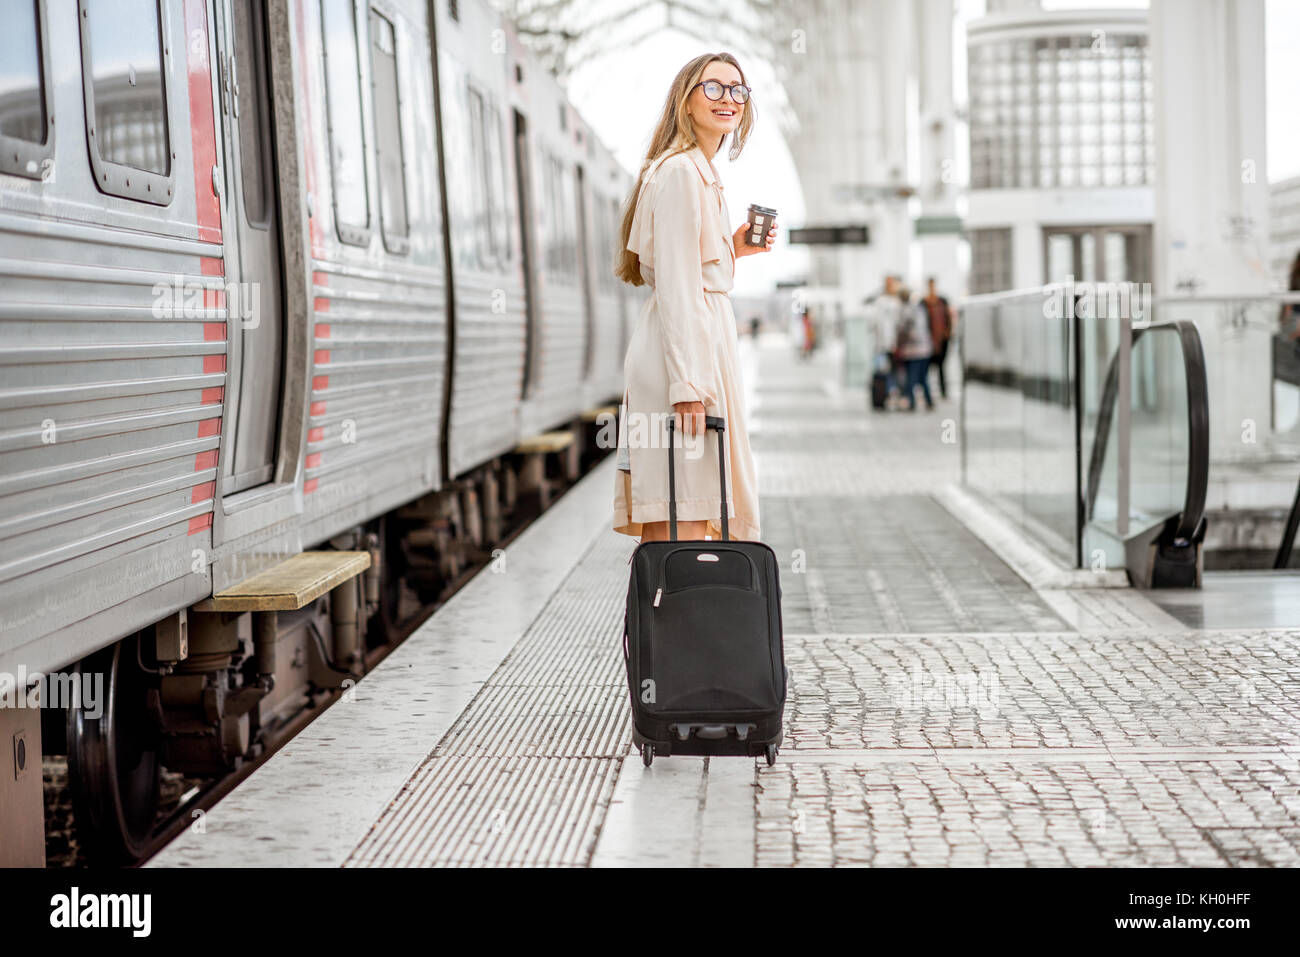 Woman at the railway station - Stock Image